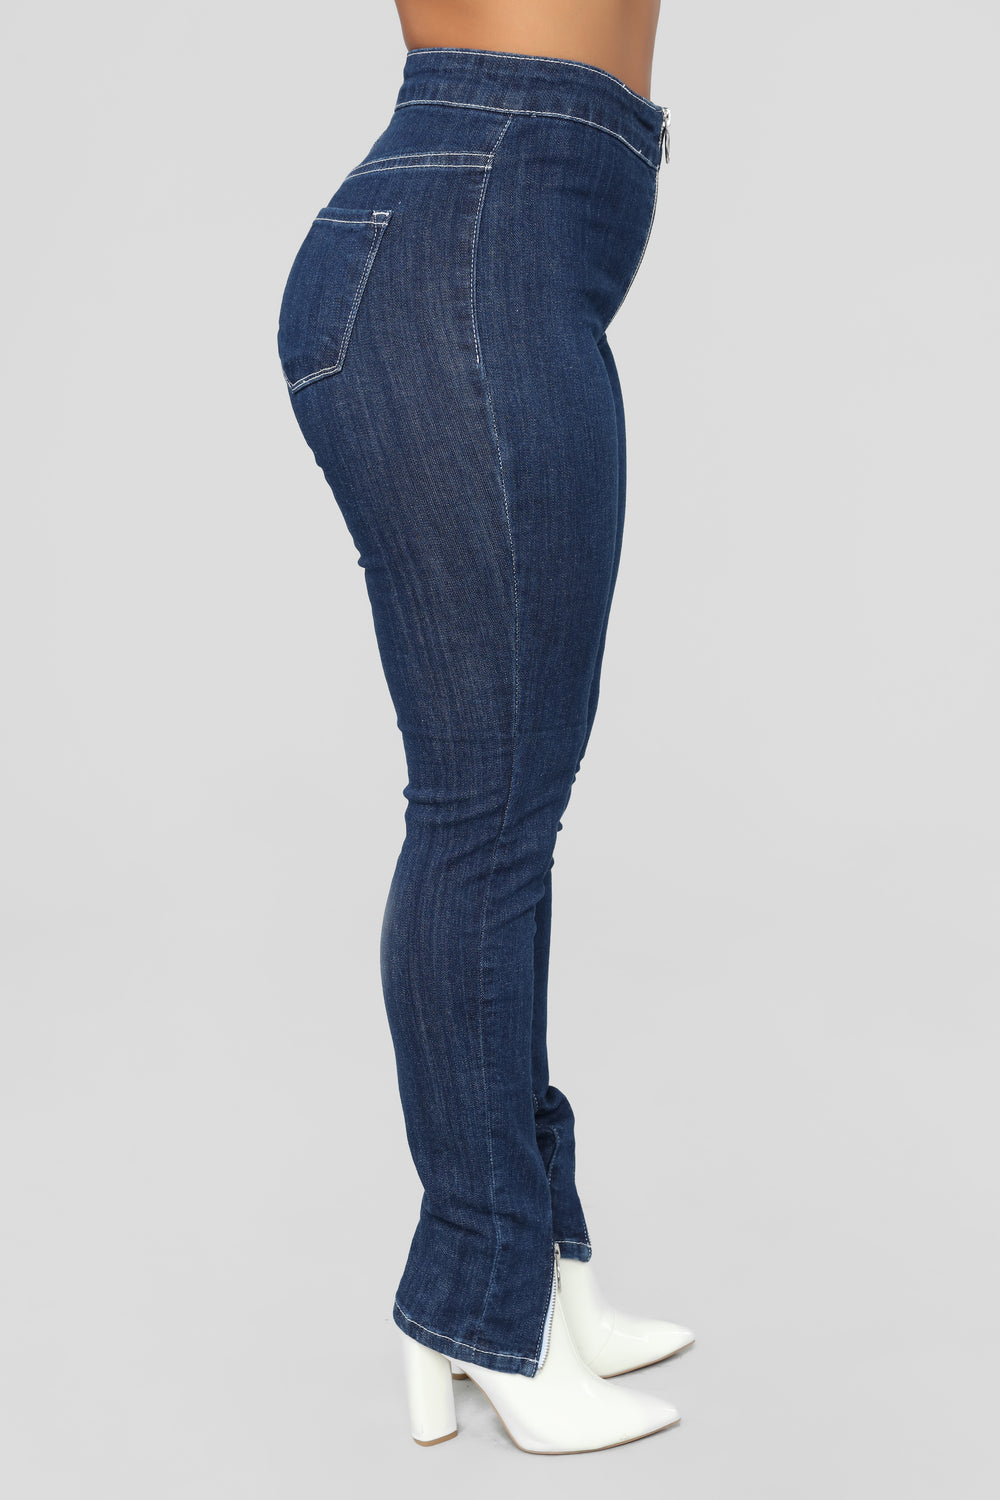 Stop At Nothing High Rise Jeans - Dark Denim